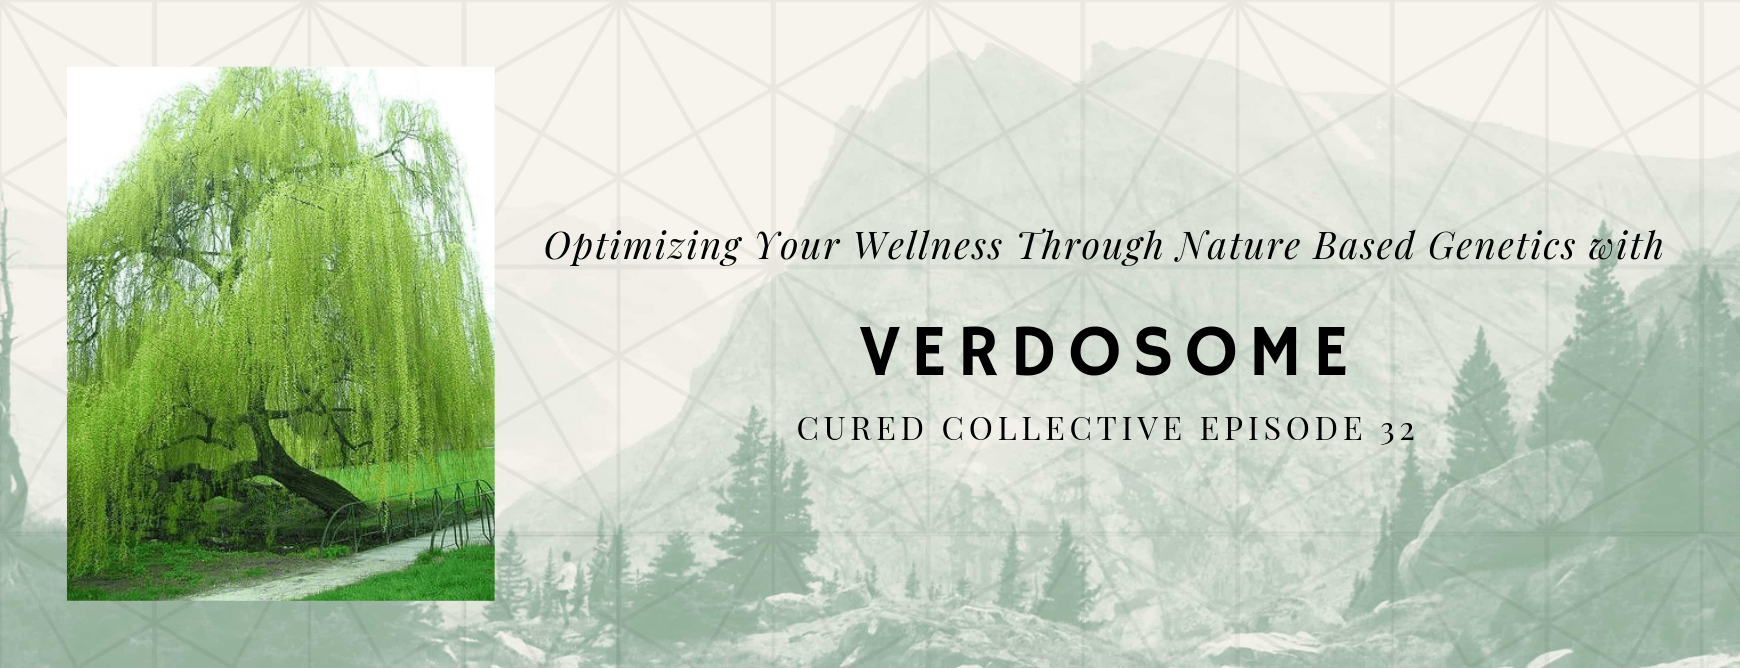 Verdosome on the Cured Collective